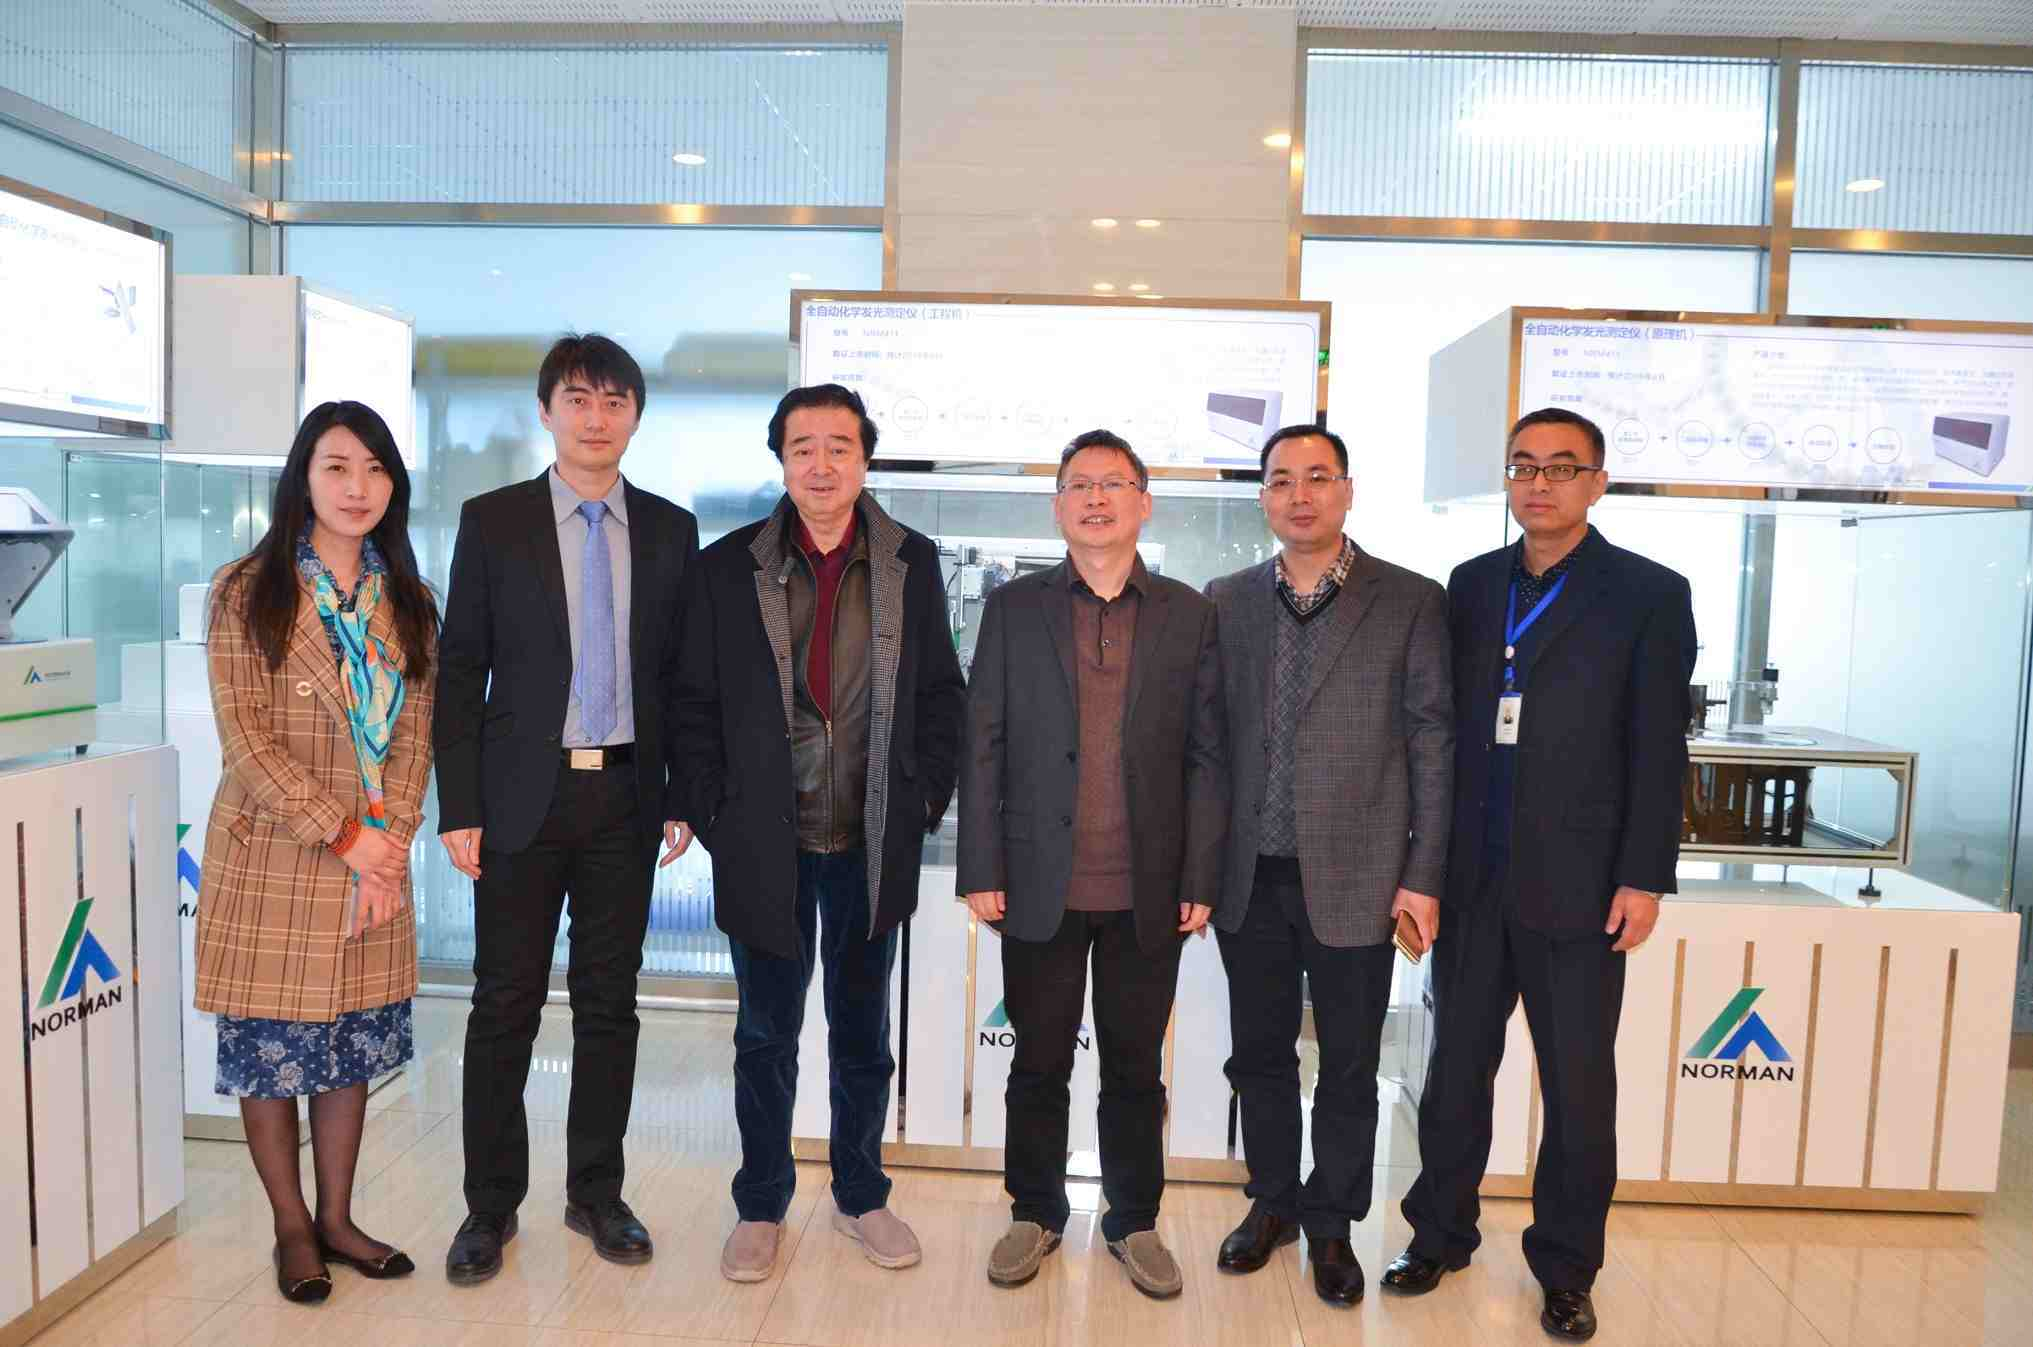 Professor Yulong Cong inspected Norman on 28th, March